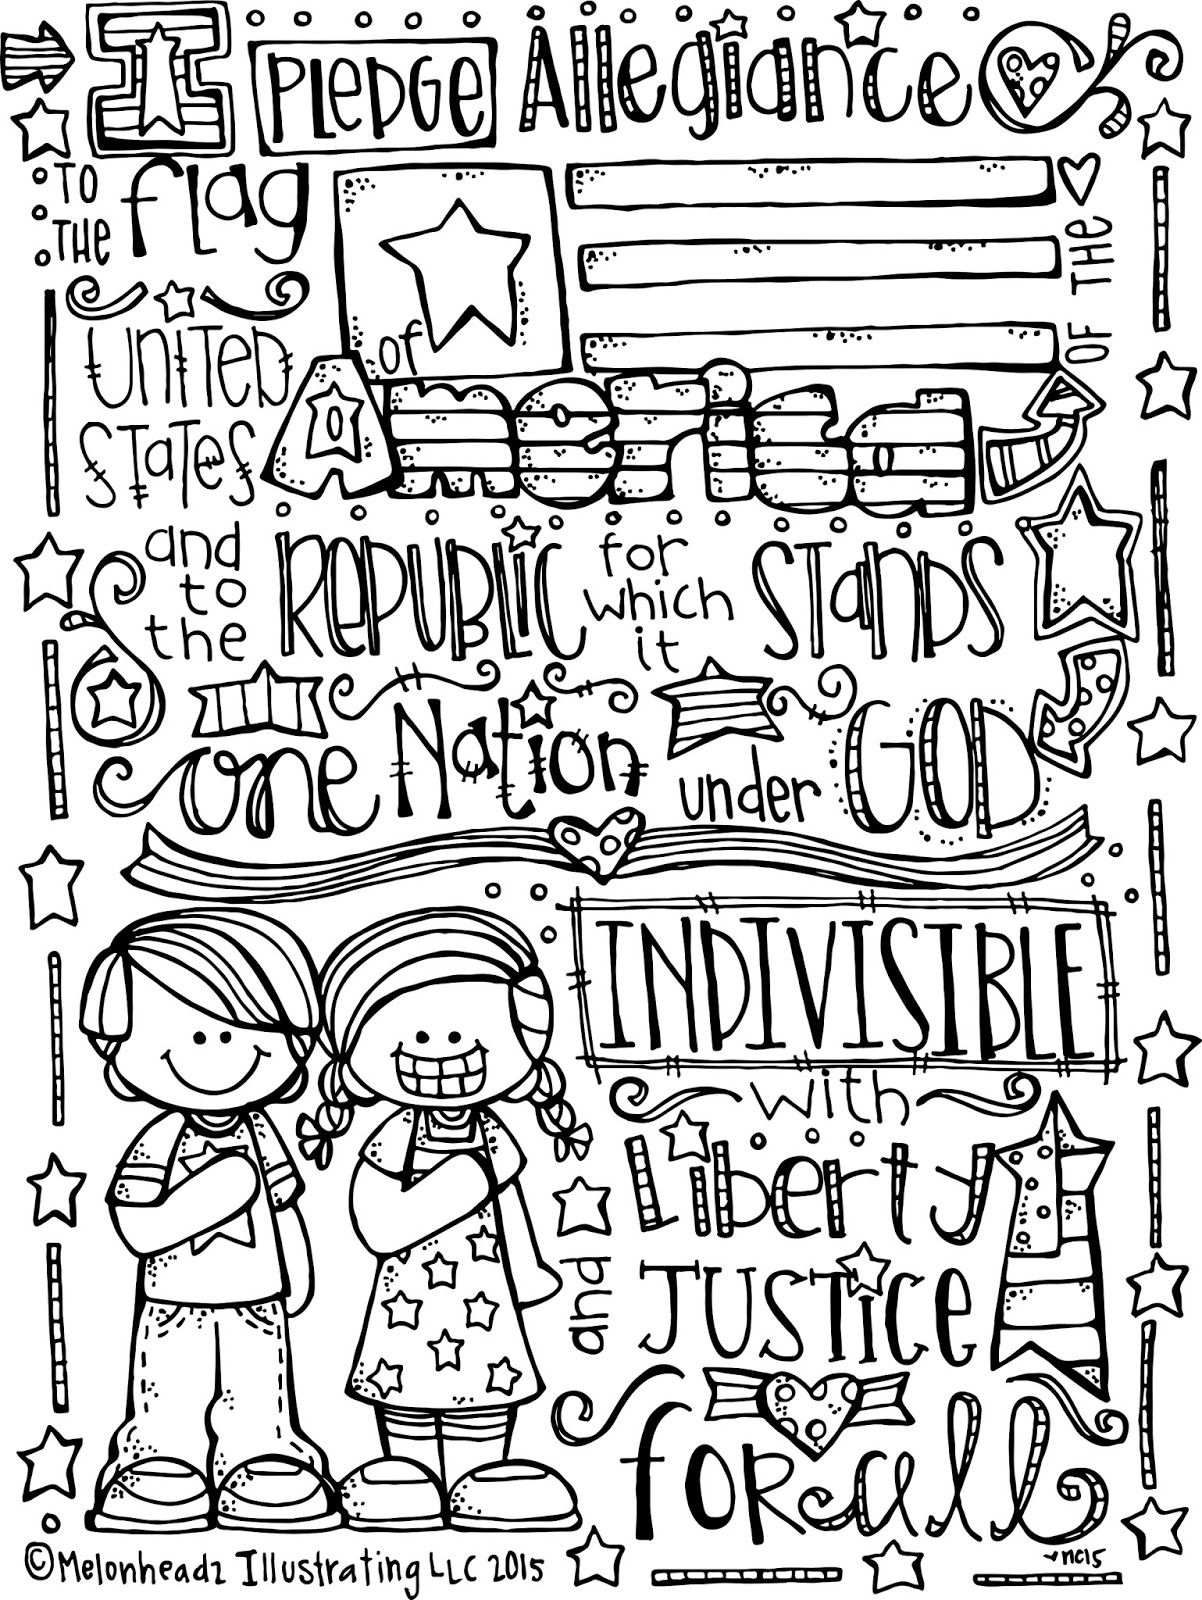 Adult Top Pledge Of Allegiance Coloring Page Images cute httpmelonheadzillustrating blogspot com201507happy 4th of july html bible class pinterest coloring pages pledge of